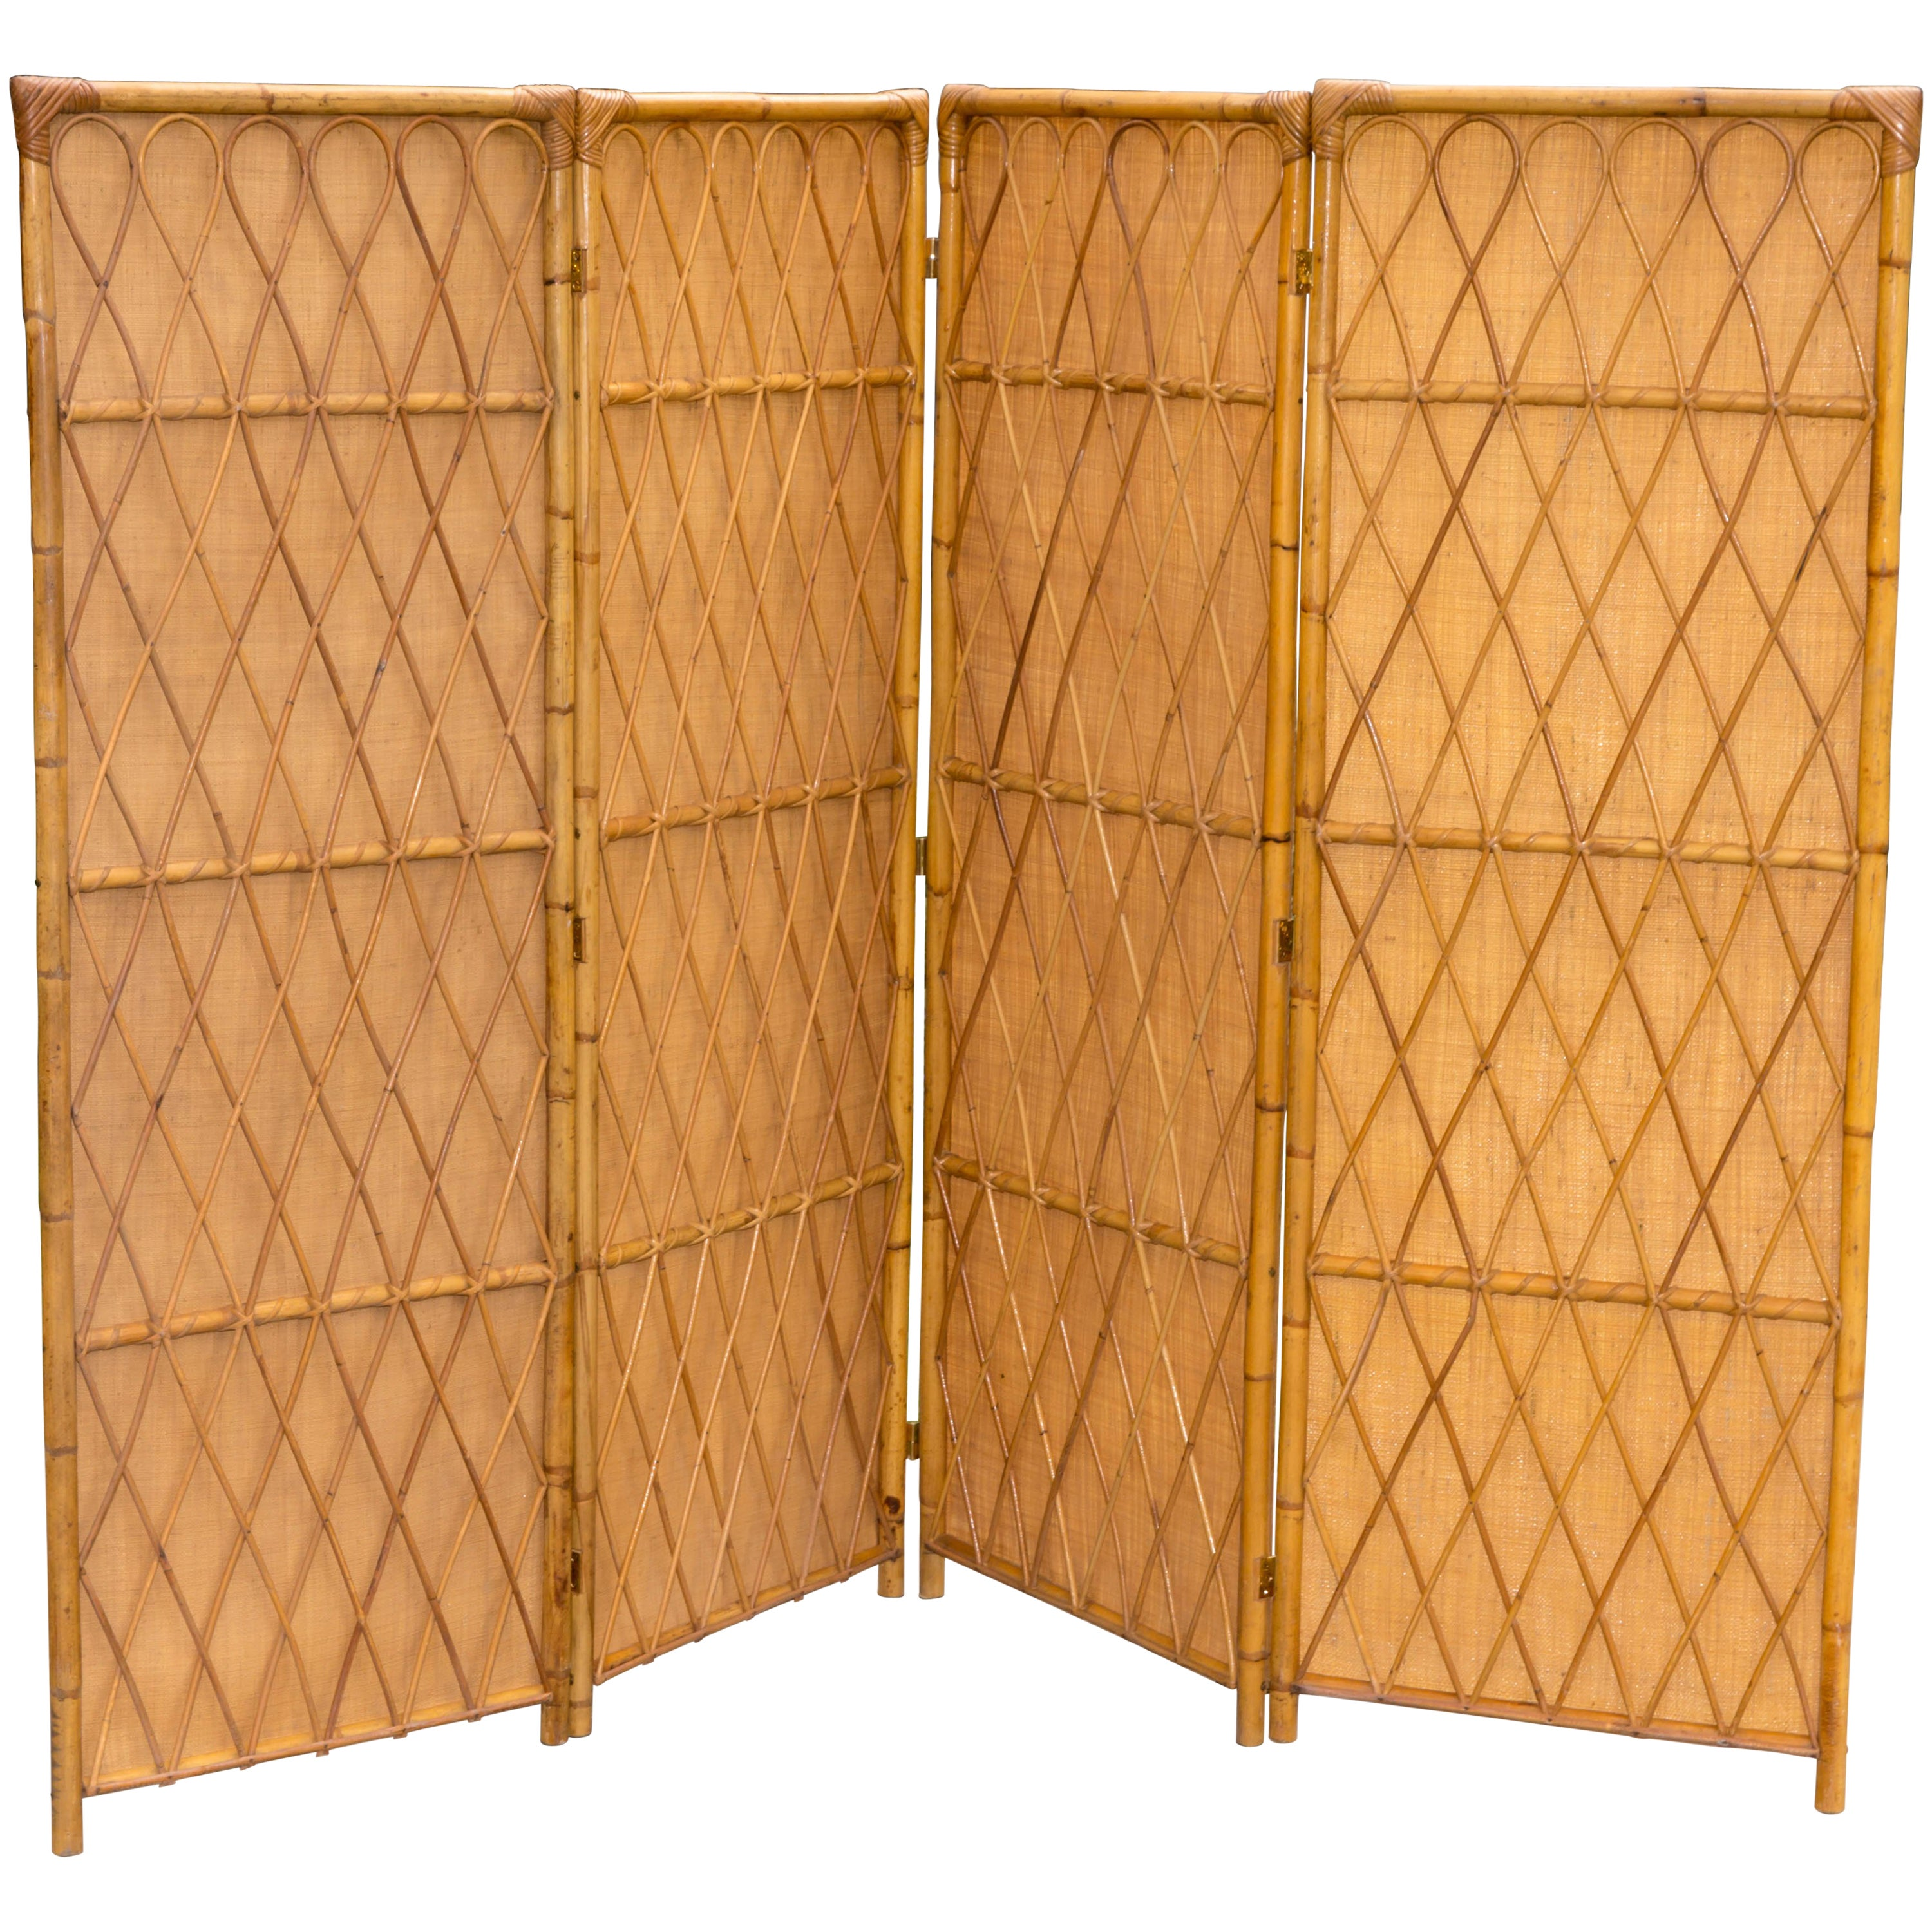 """""""Three"""" Panel Rattan Screen with Inserted Woven Grass Panels for Privacy"""